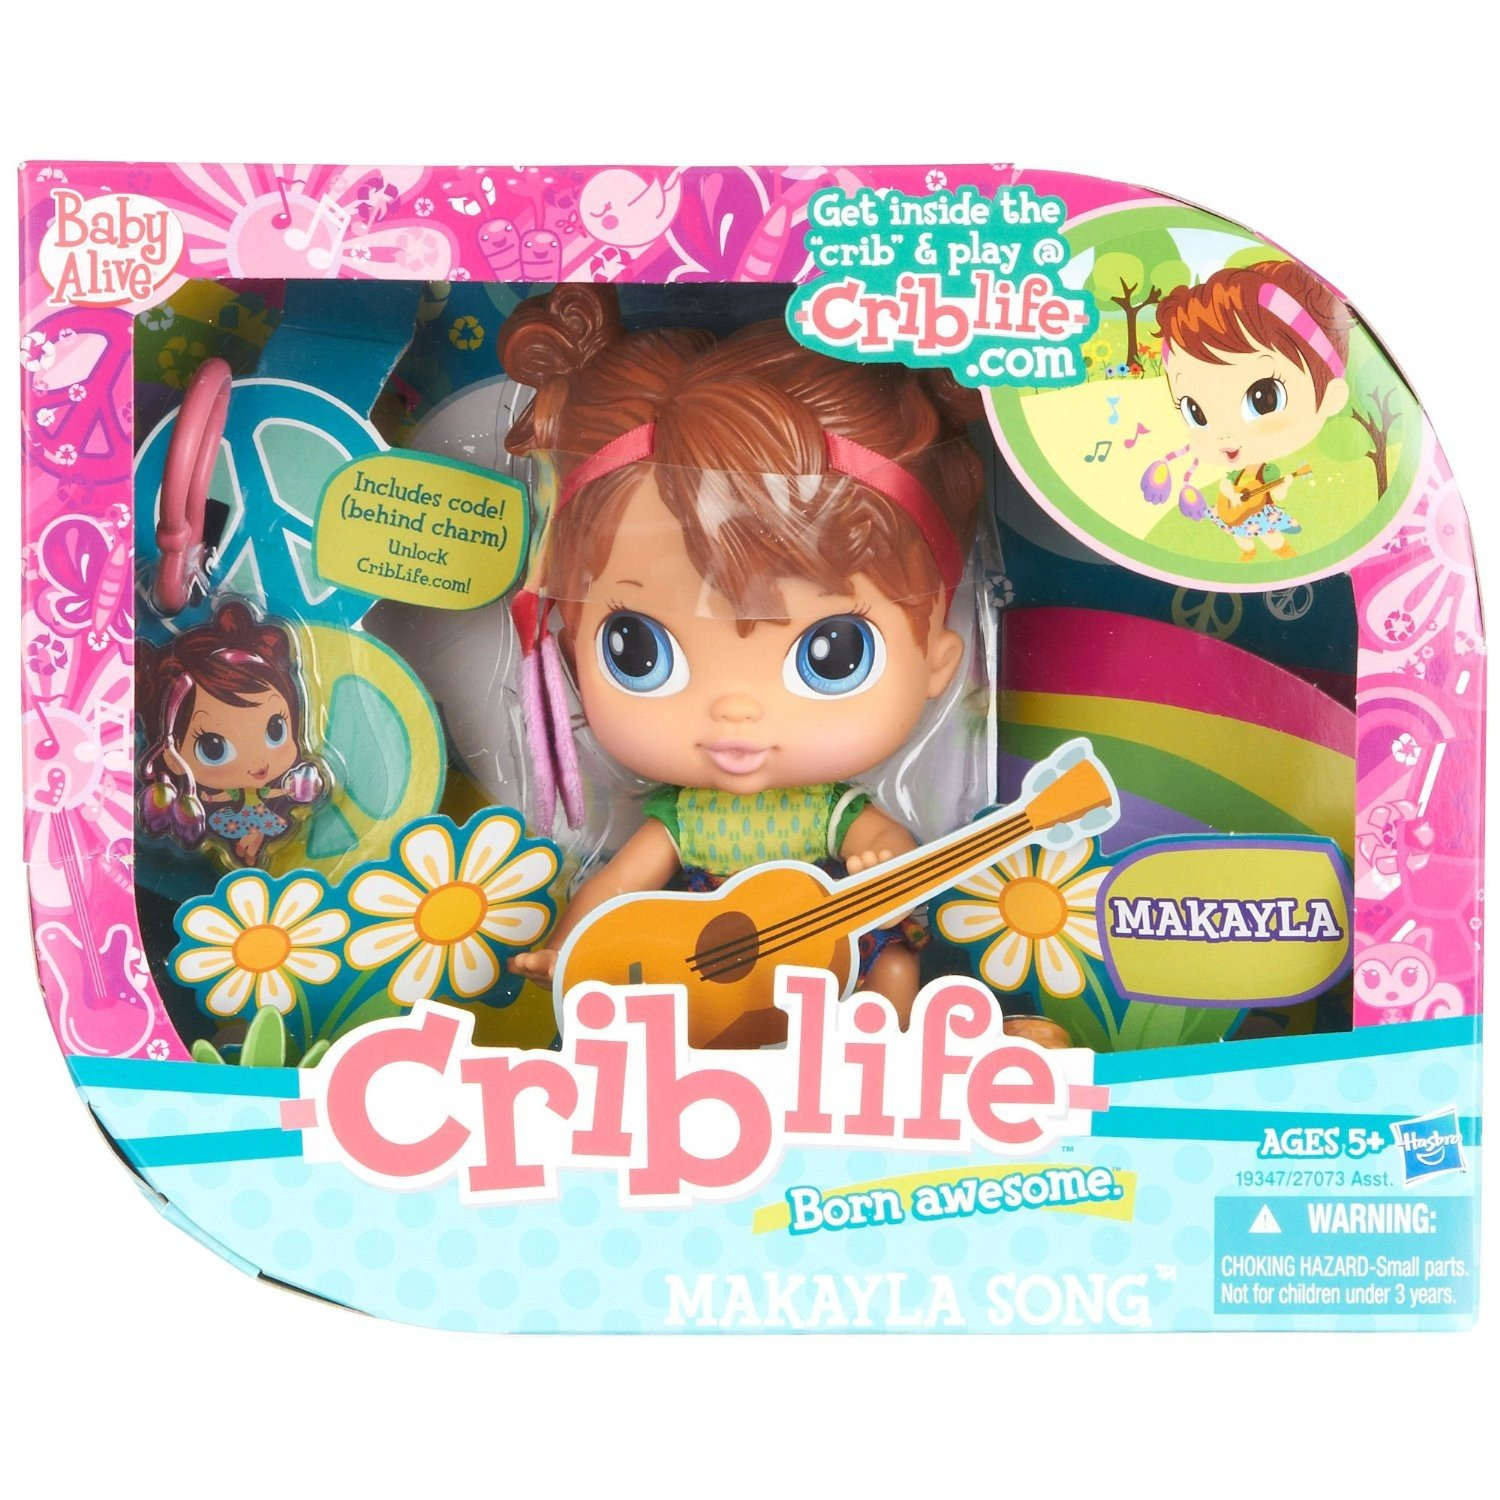 Uncategorized Criblife amazon com baby alive crib life fashion play doll makayla song toys games